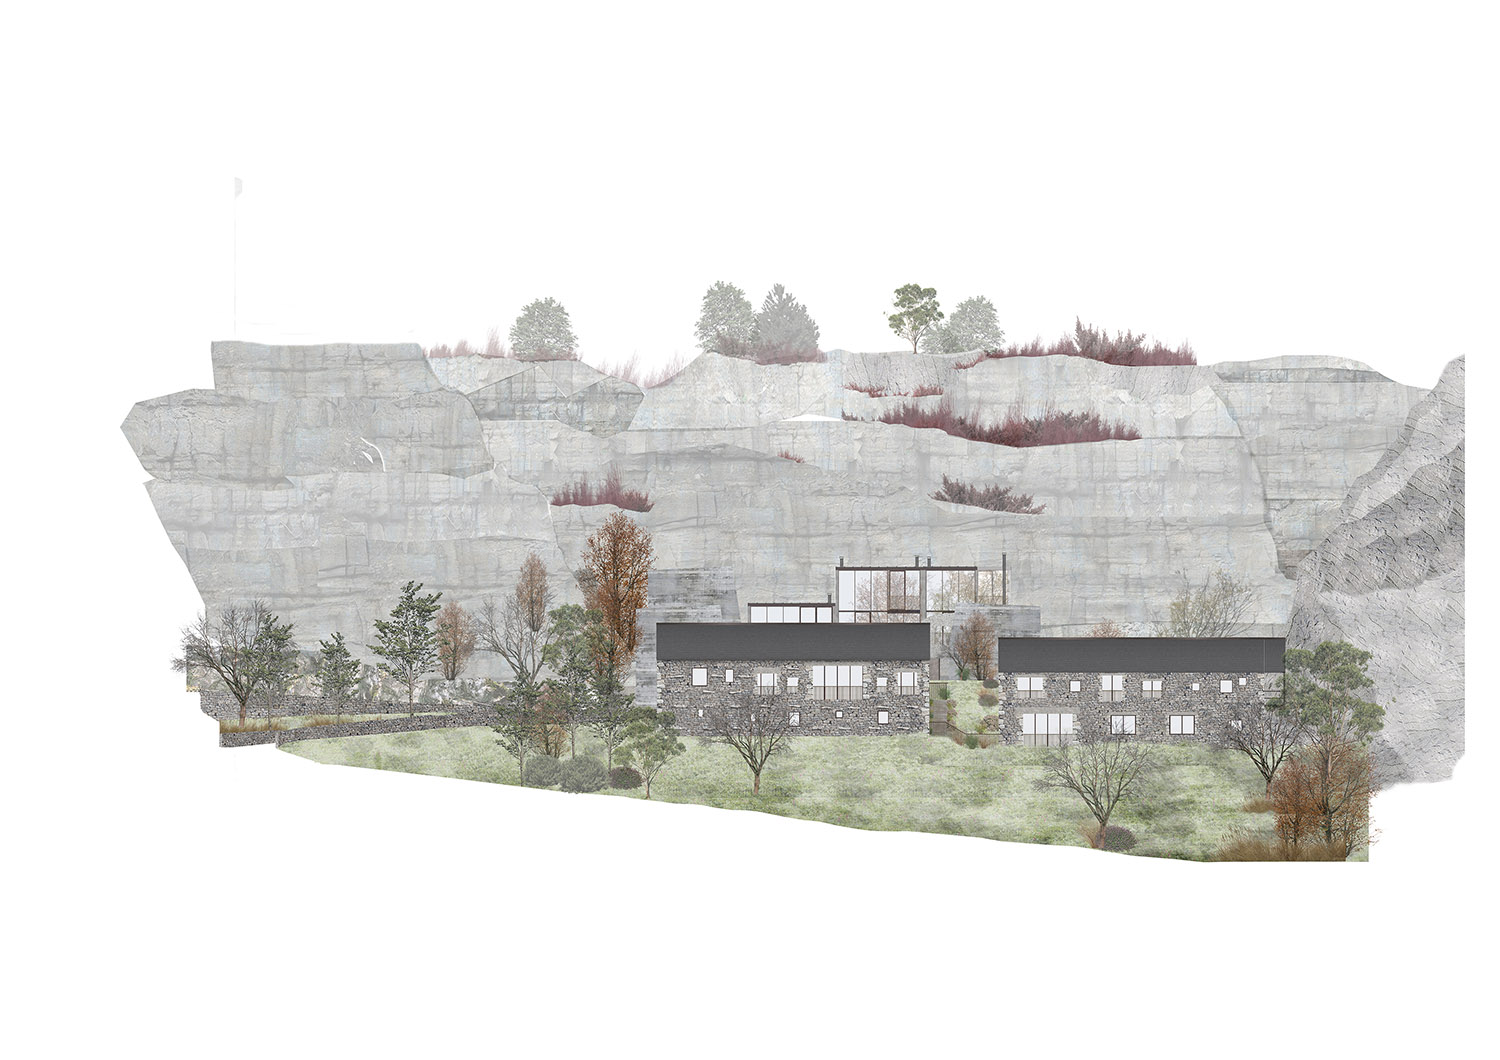 The vernacular bank barn typology is re-imagined in the quarry context